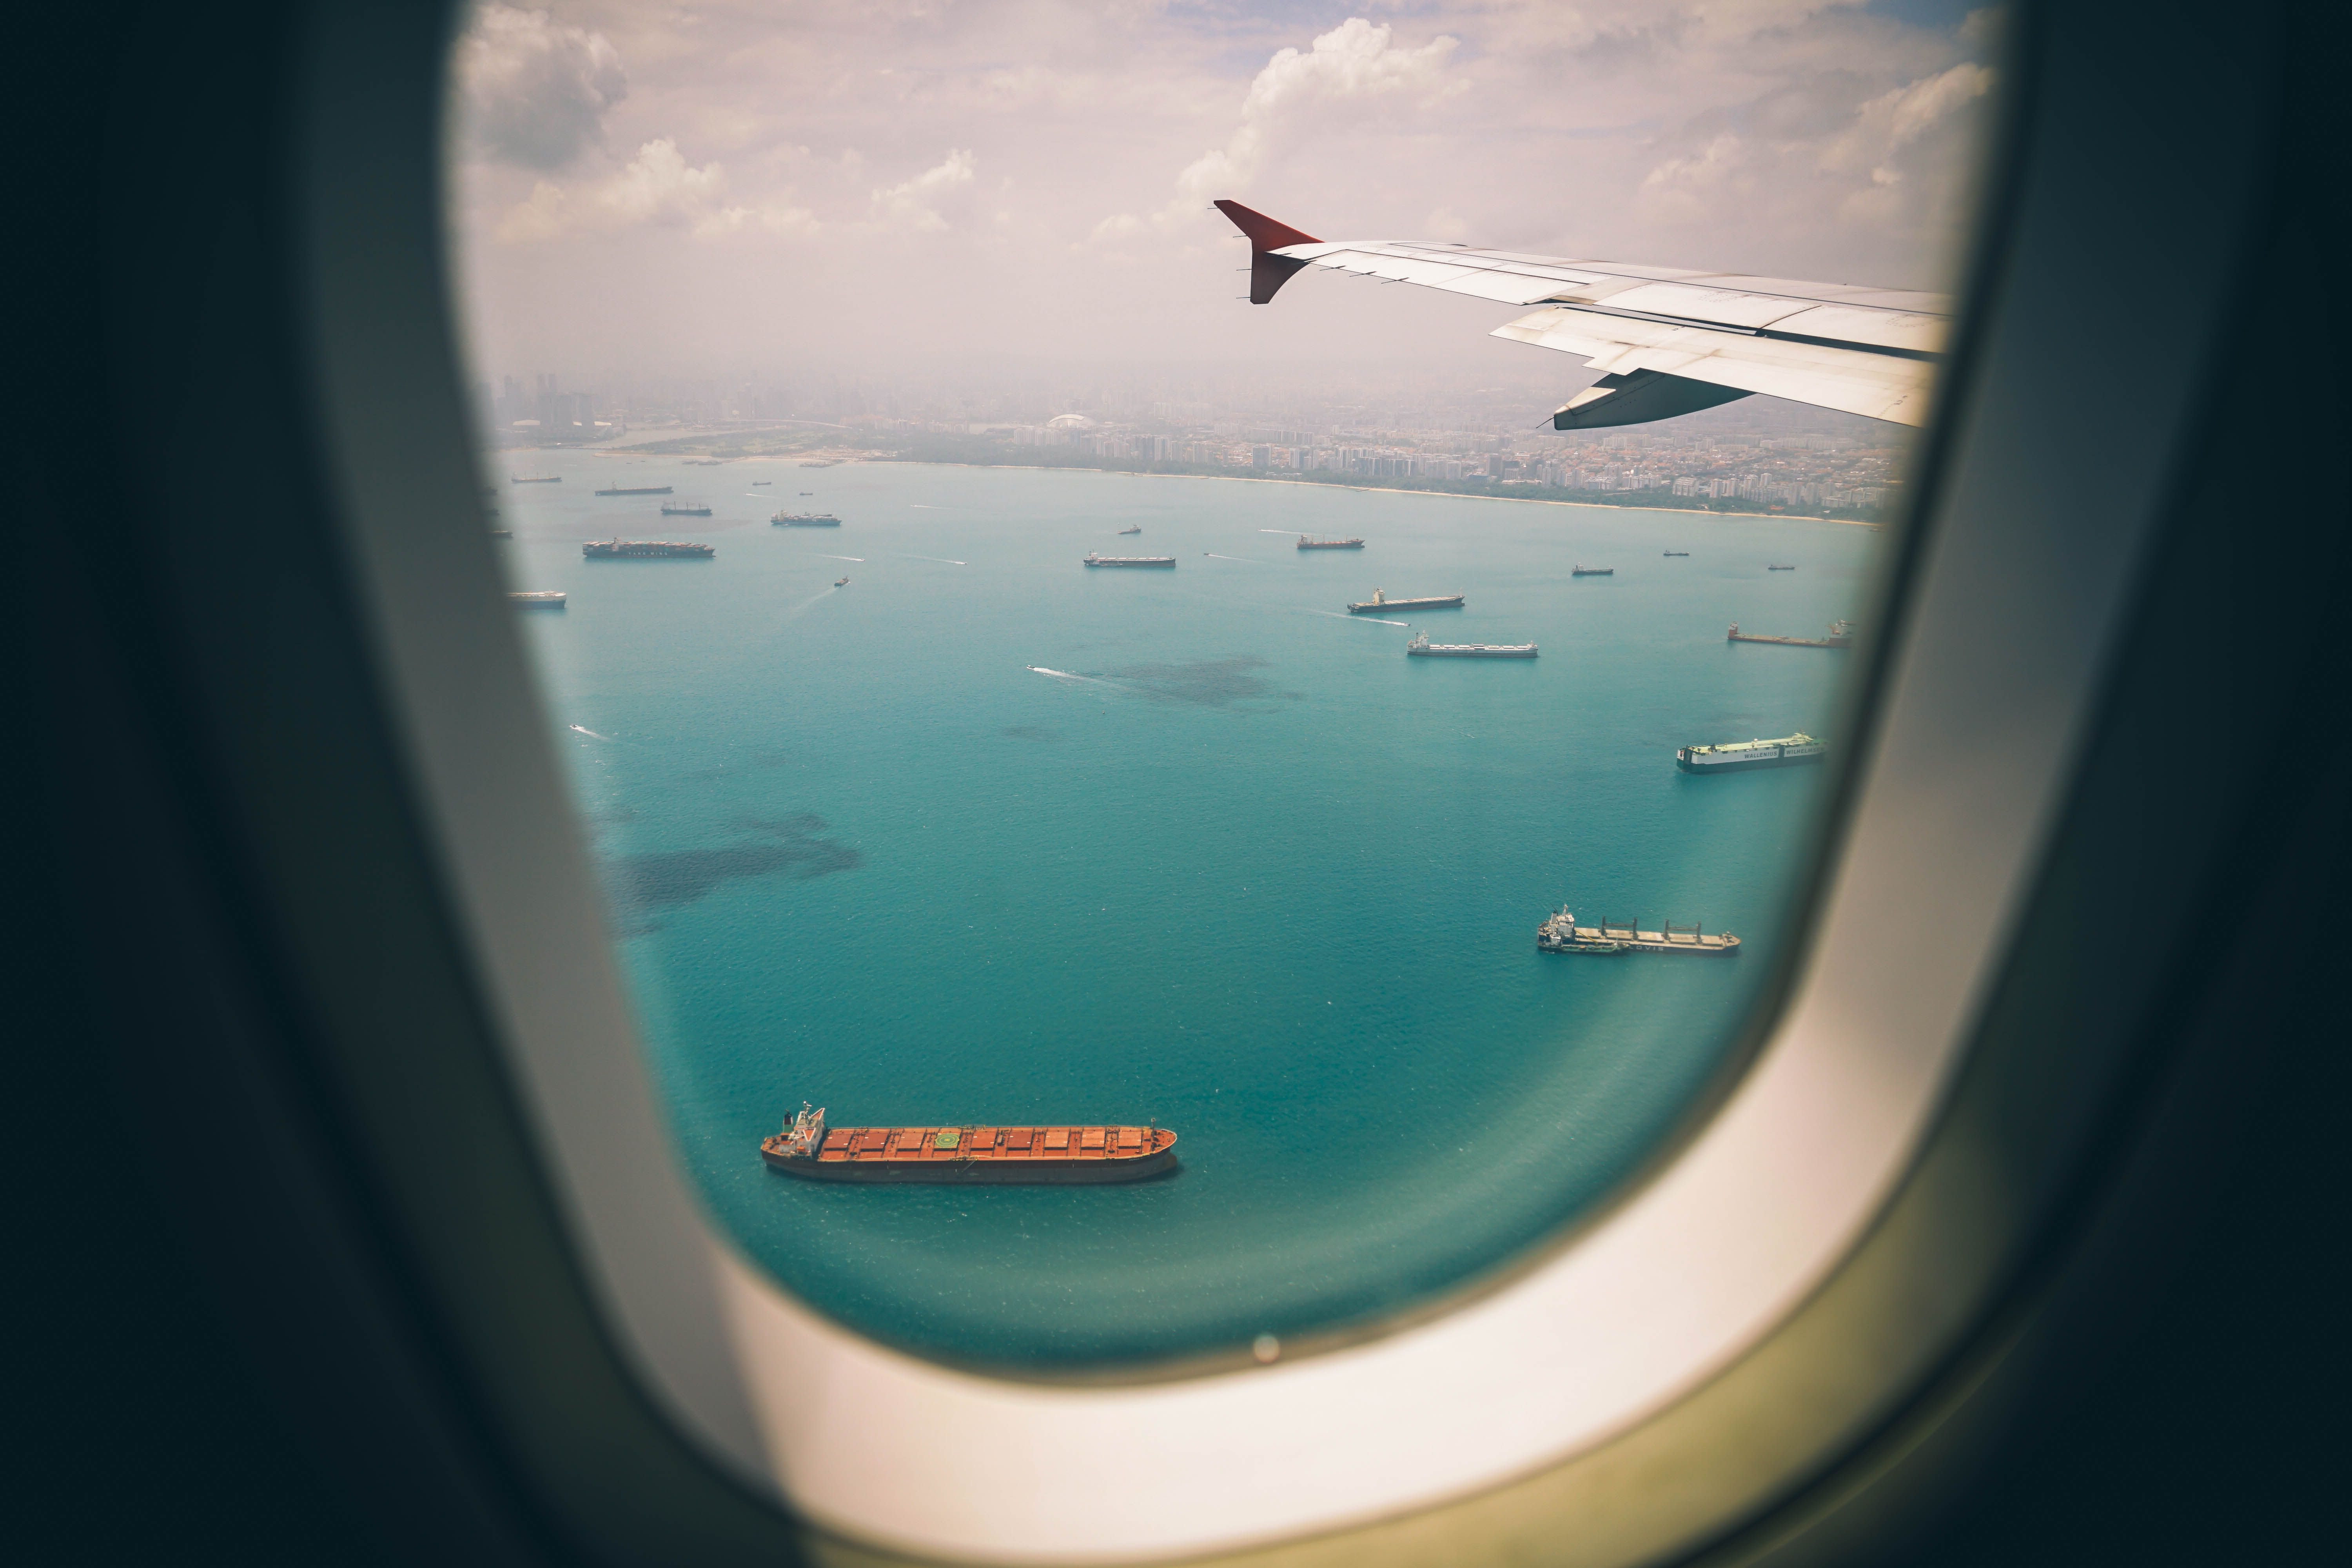 View of a large number of ships on the ocean from the window of an airplane